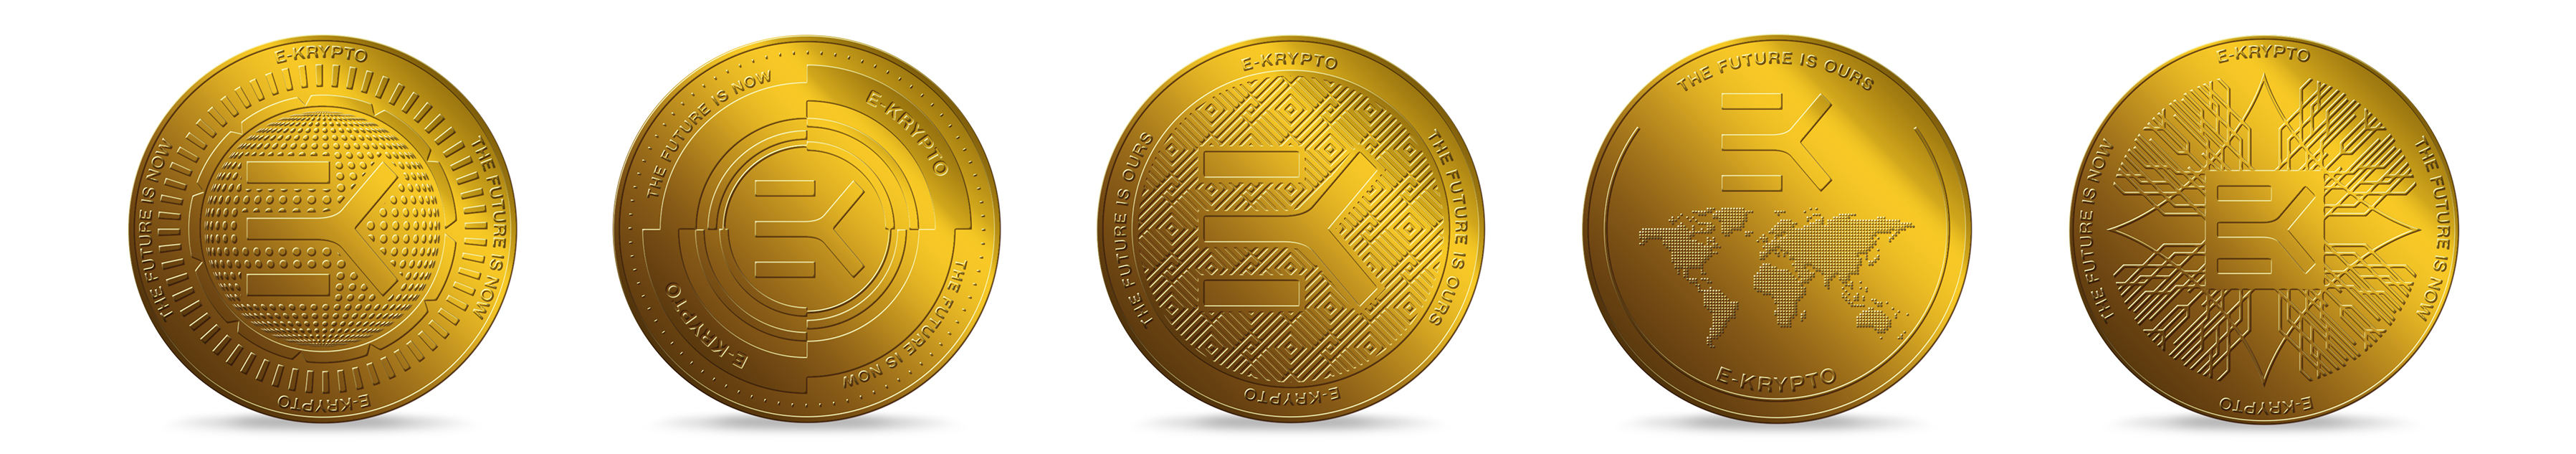 E-KryptoCoin Use